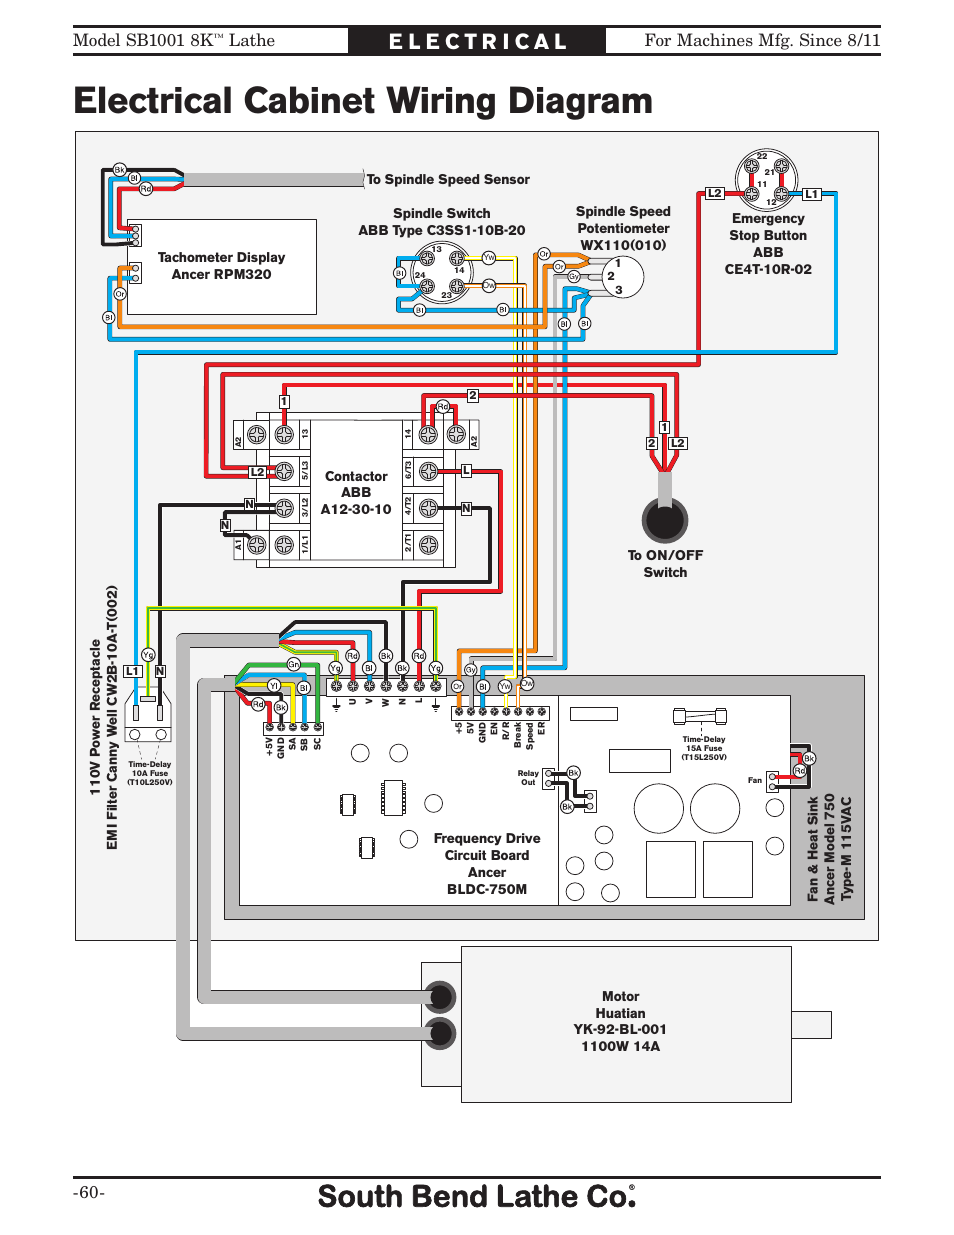 South Bend Lathe Motor Wiring Diagram South Bend Lathe Wiring Diagrams  South Bend Lathe Wiring Diagram